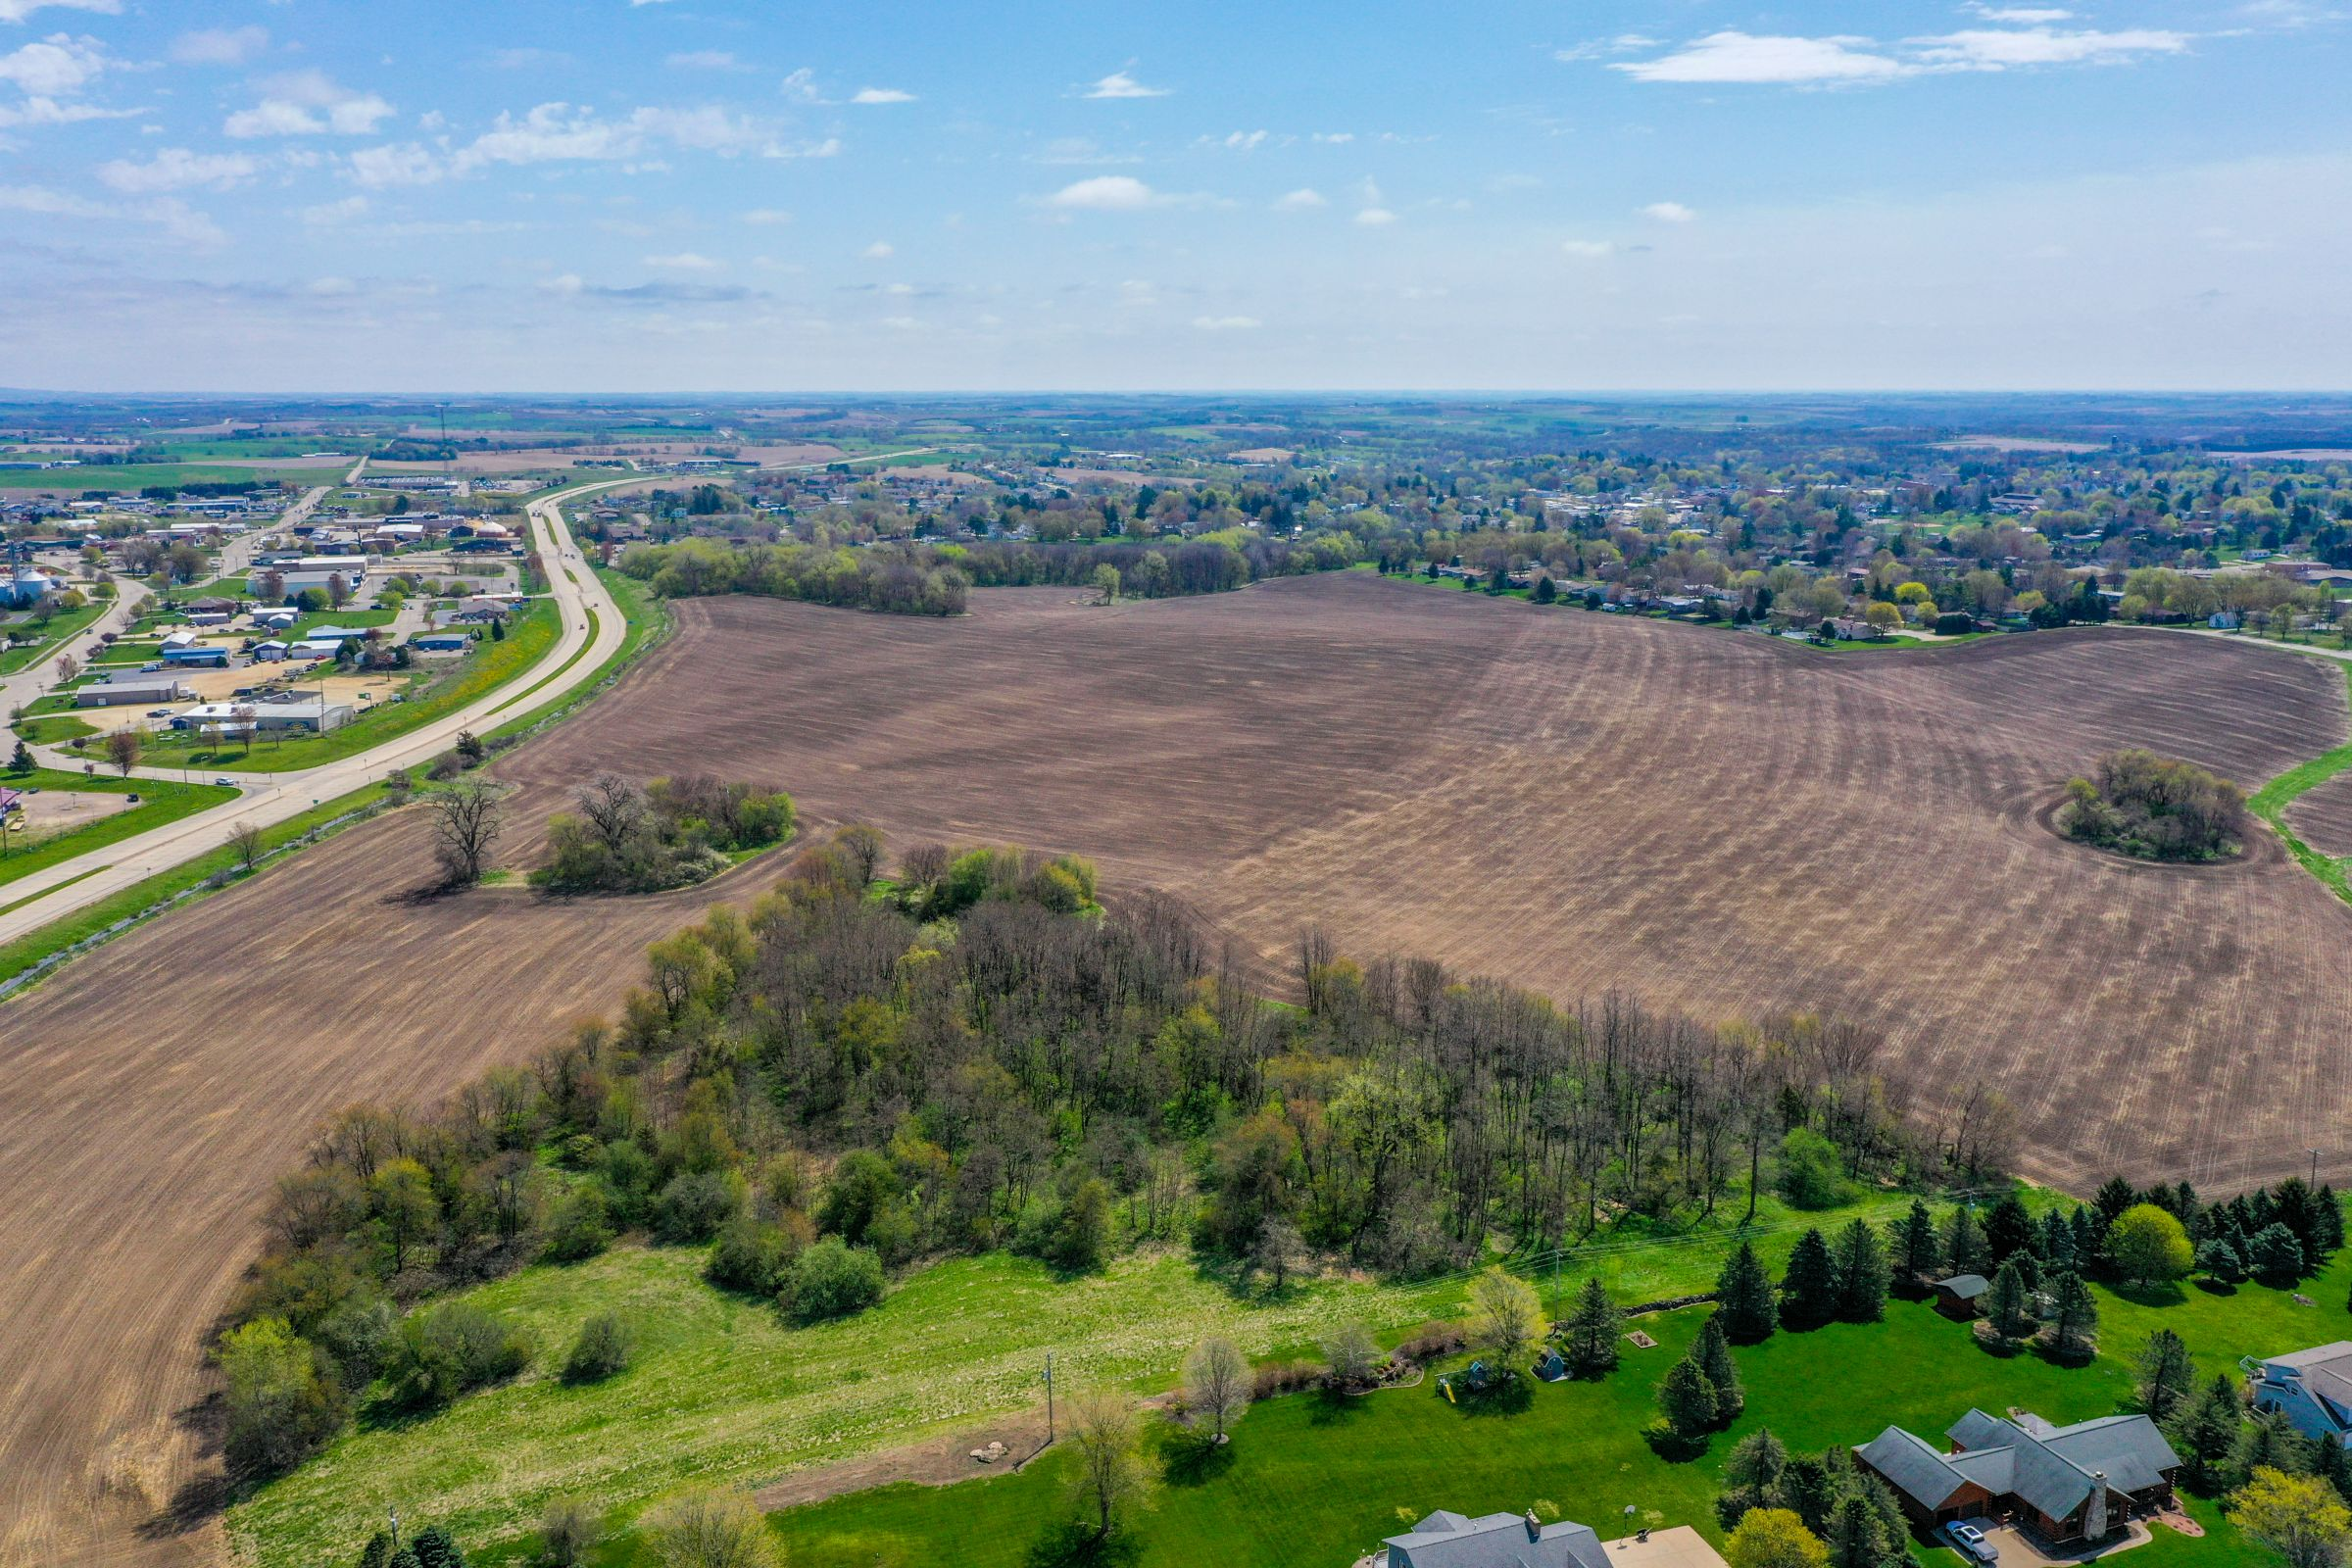 development-land-commercial-iowa-county-wisconsin-152-acres-listing-number-15474-0-2021-05-18-163543.jpg